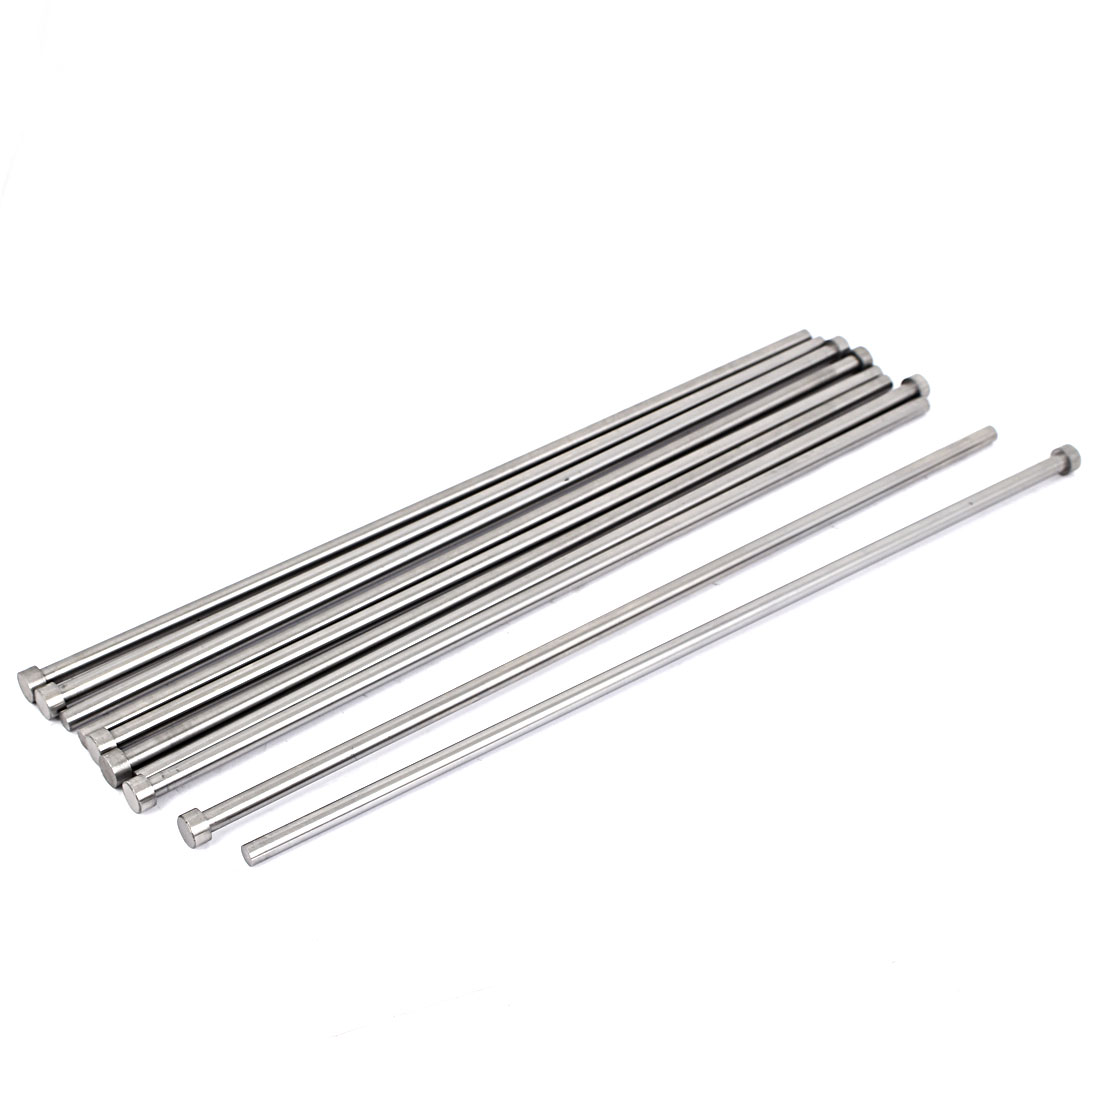 Die Mold Equipment Steel Straight Ejector Pins Punches 7mmx350mm Silver Gray 10pcs